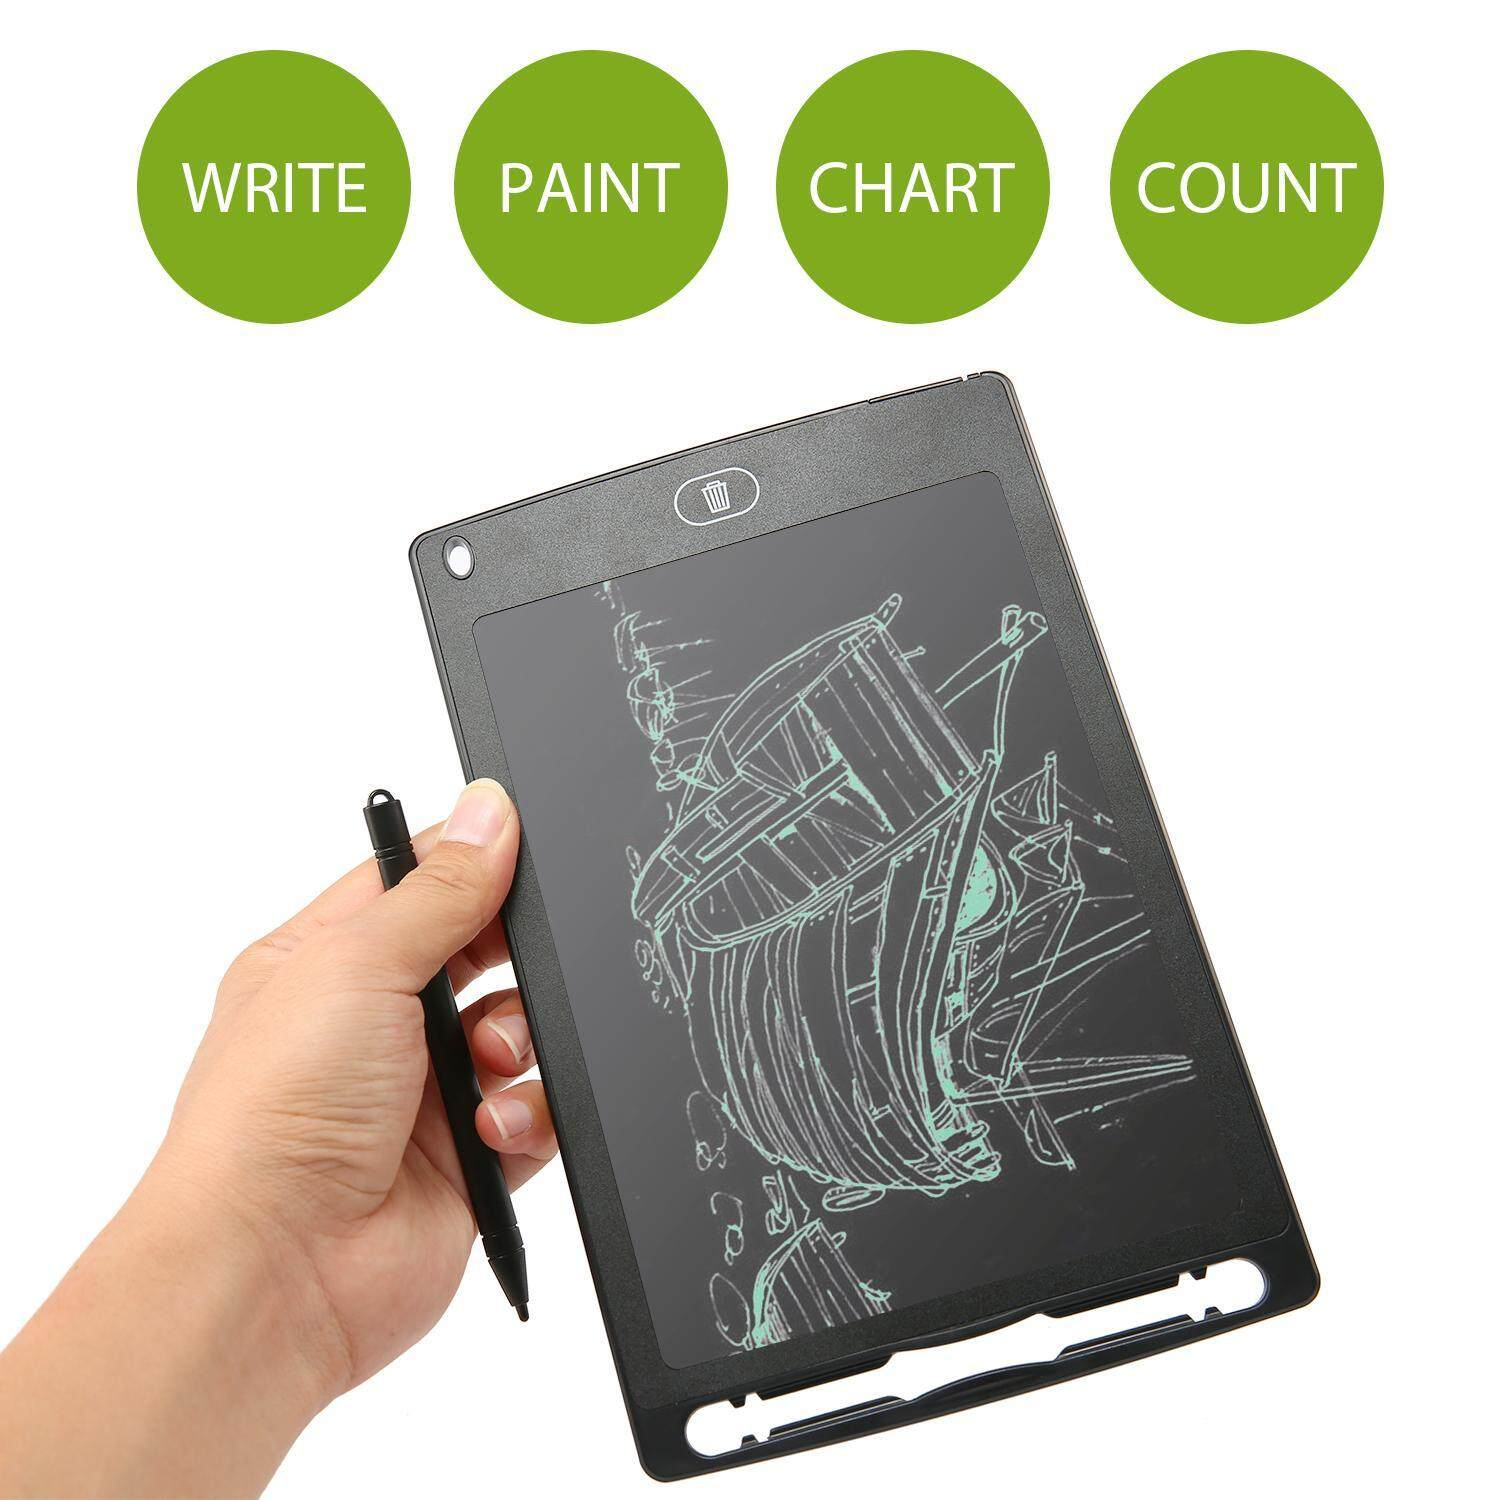 Vankel LCD Tablet, Portable Digital Tablet Tablet With Pen (8.5 Inches) - intl